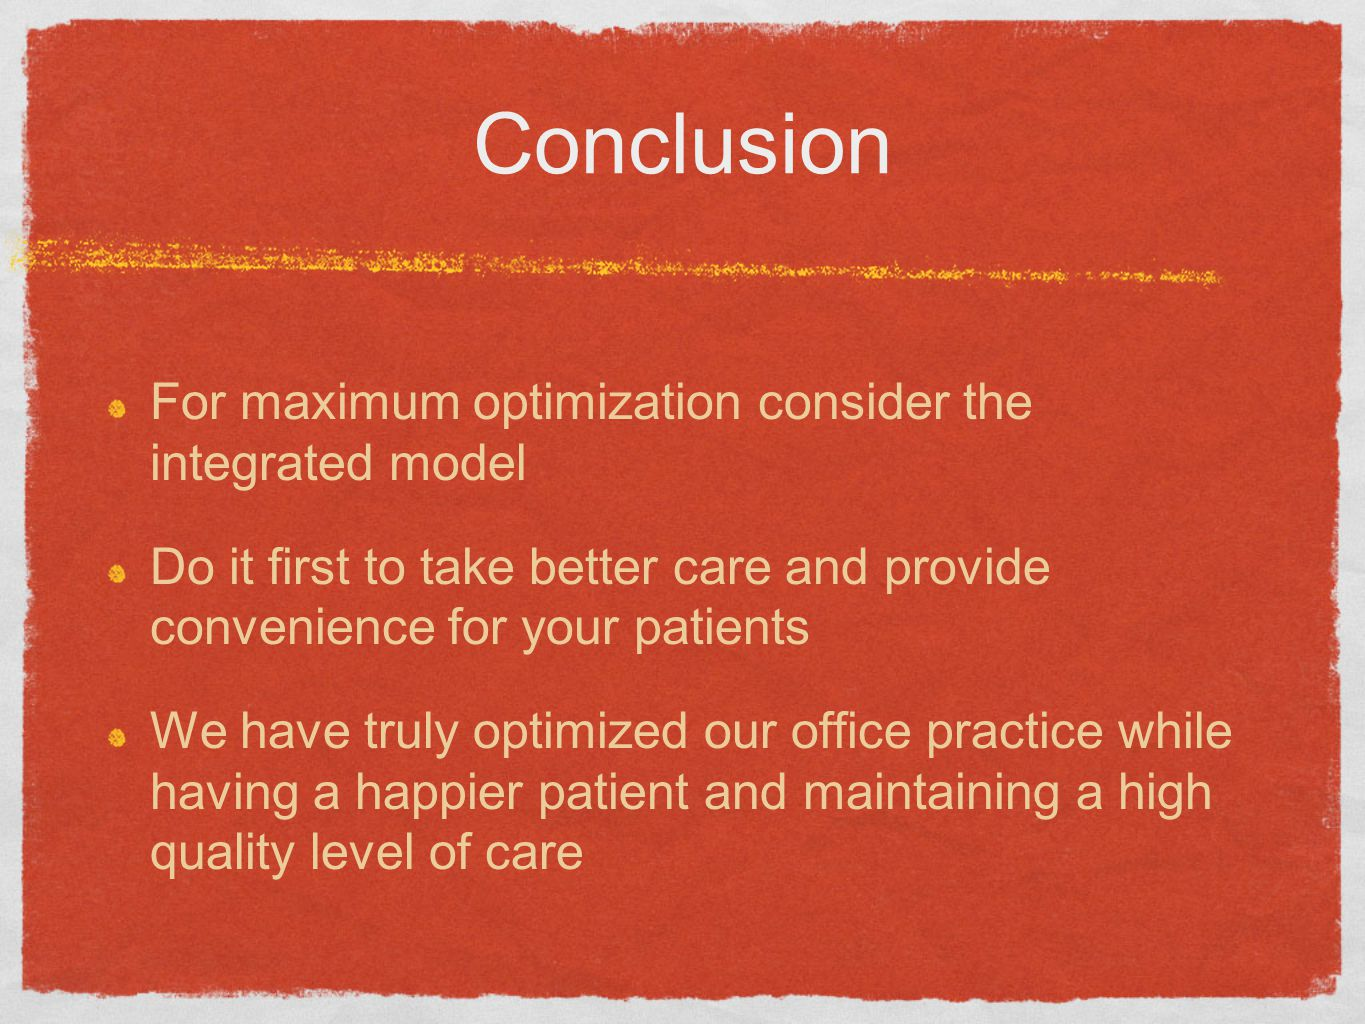 Conclusion For maximum optimization consider the integrated model Do it first to take better care and provide convenience for your patients We have truly optimized our office practice while having a happier patient and maintaining a high quality level of care